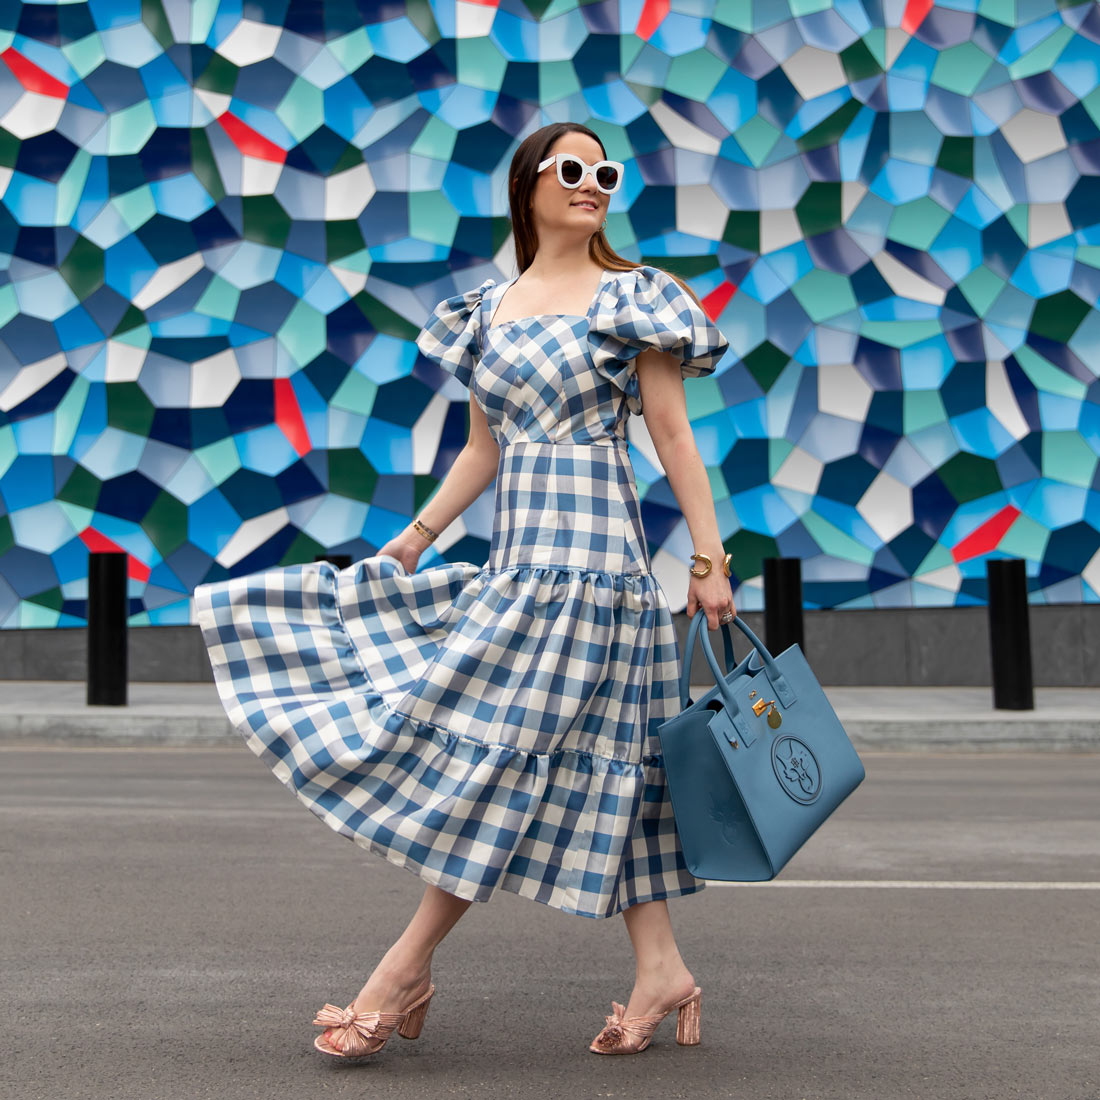 Tuckernuck Blue Gingham Dress